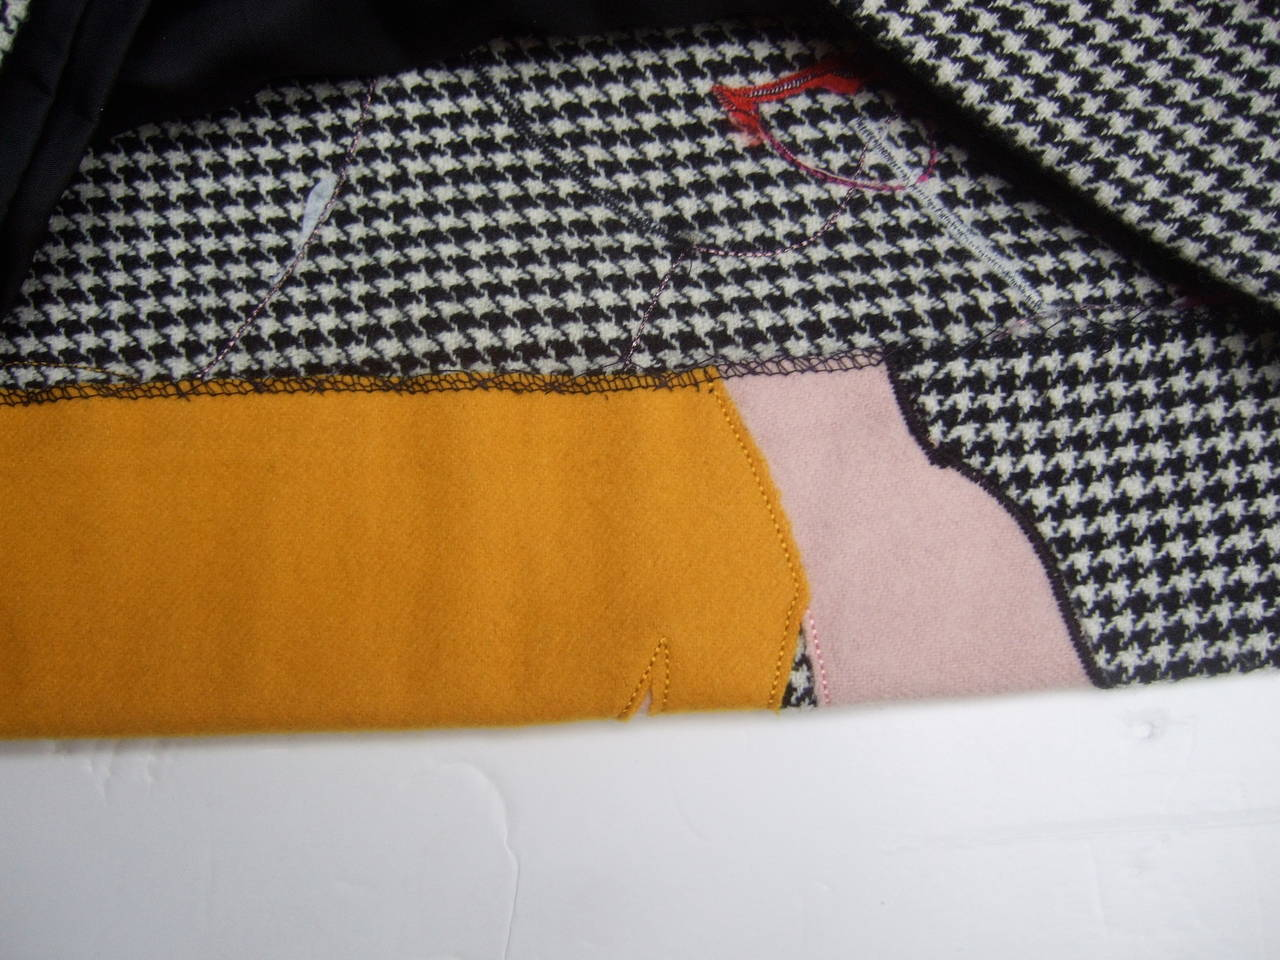 Moschino Mod Op Art Lolita Hounds Tooth Wool Skirt US Size 8 Made in Italy For Sale 5